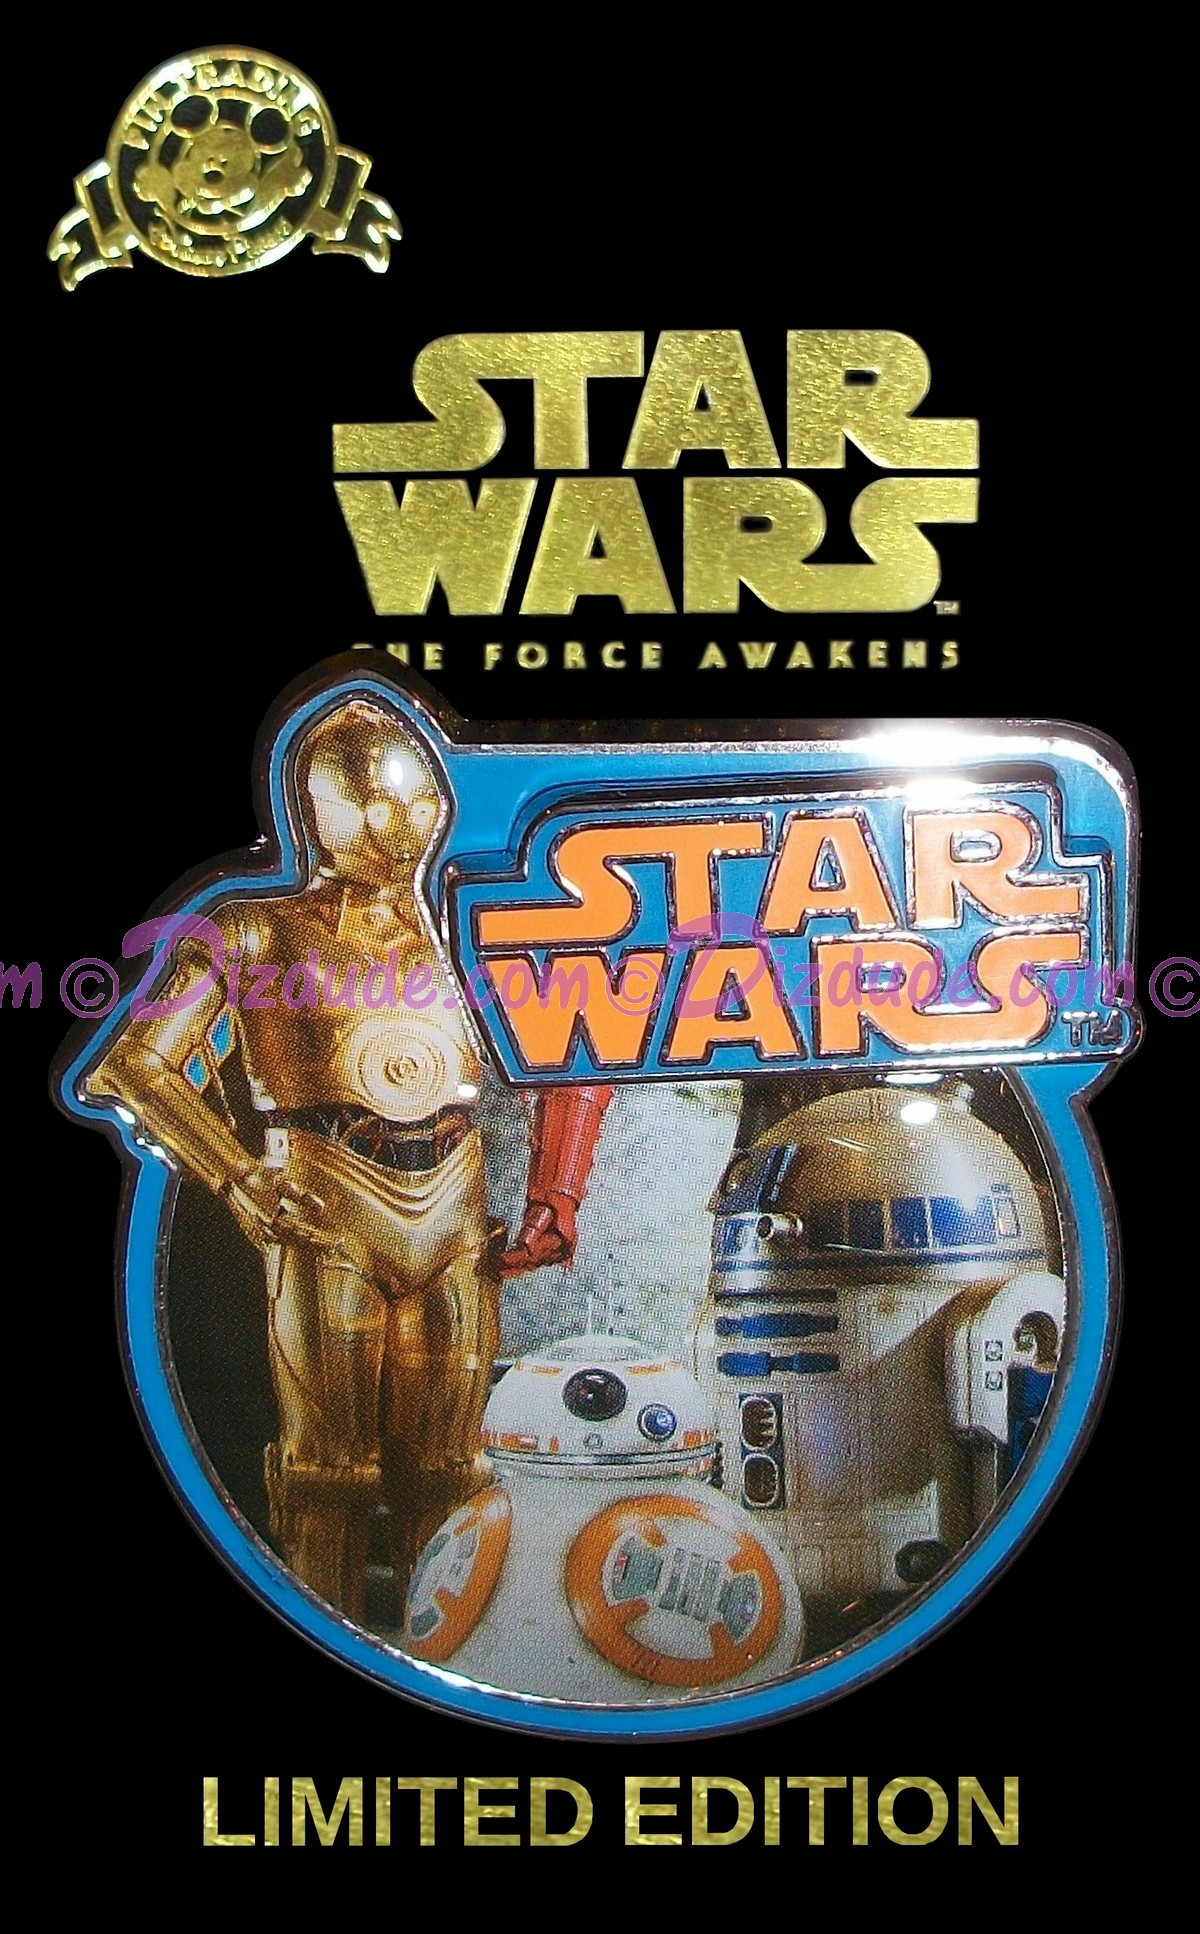 Star Wars The Force Awakens (Episode 7) - Droid Countdown #1 Pin Limited Edition © Dizdude.com